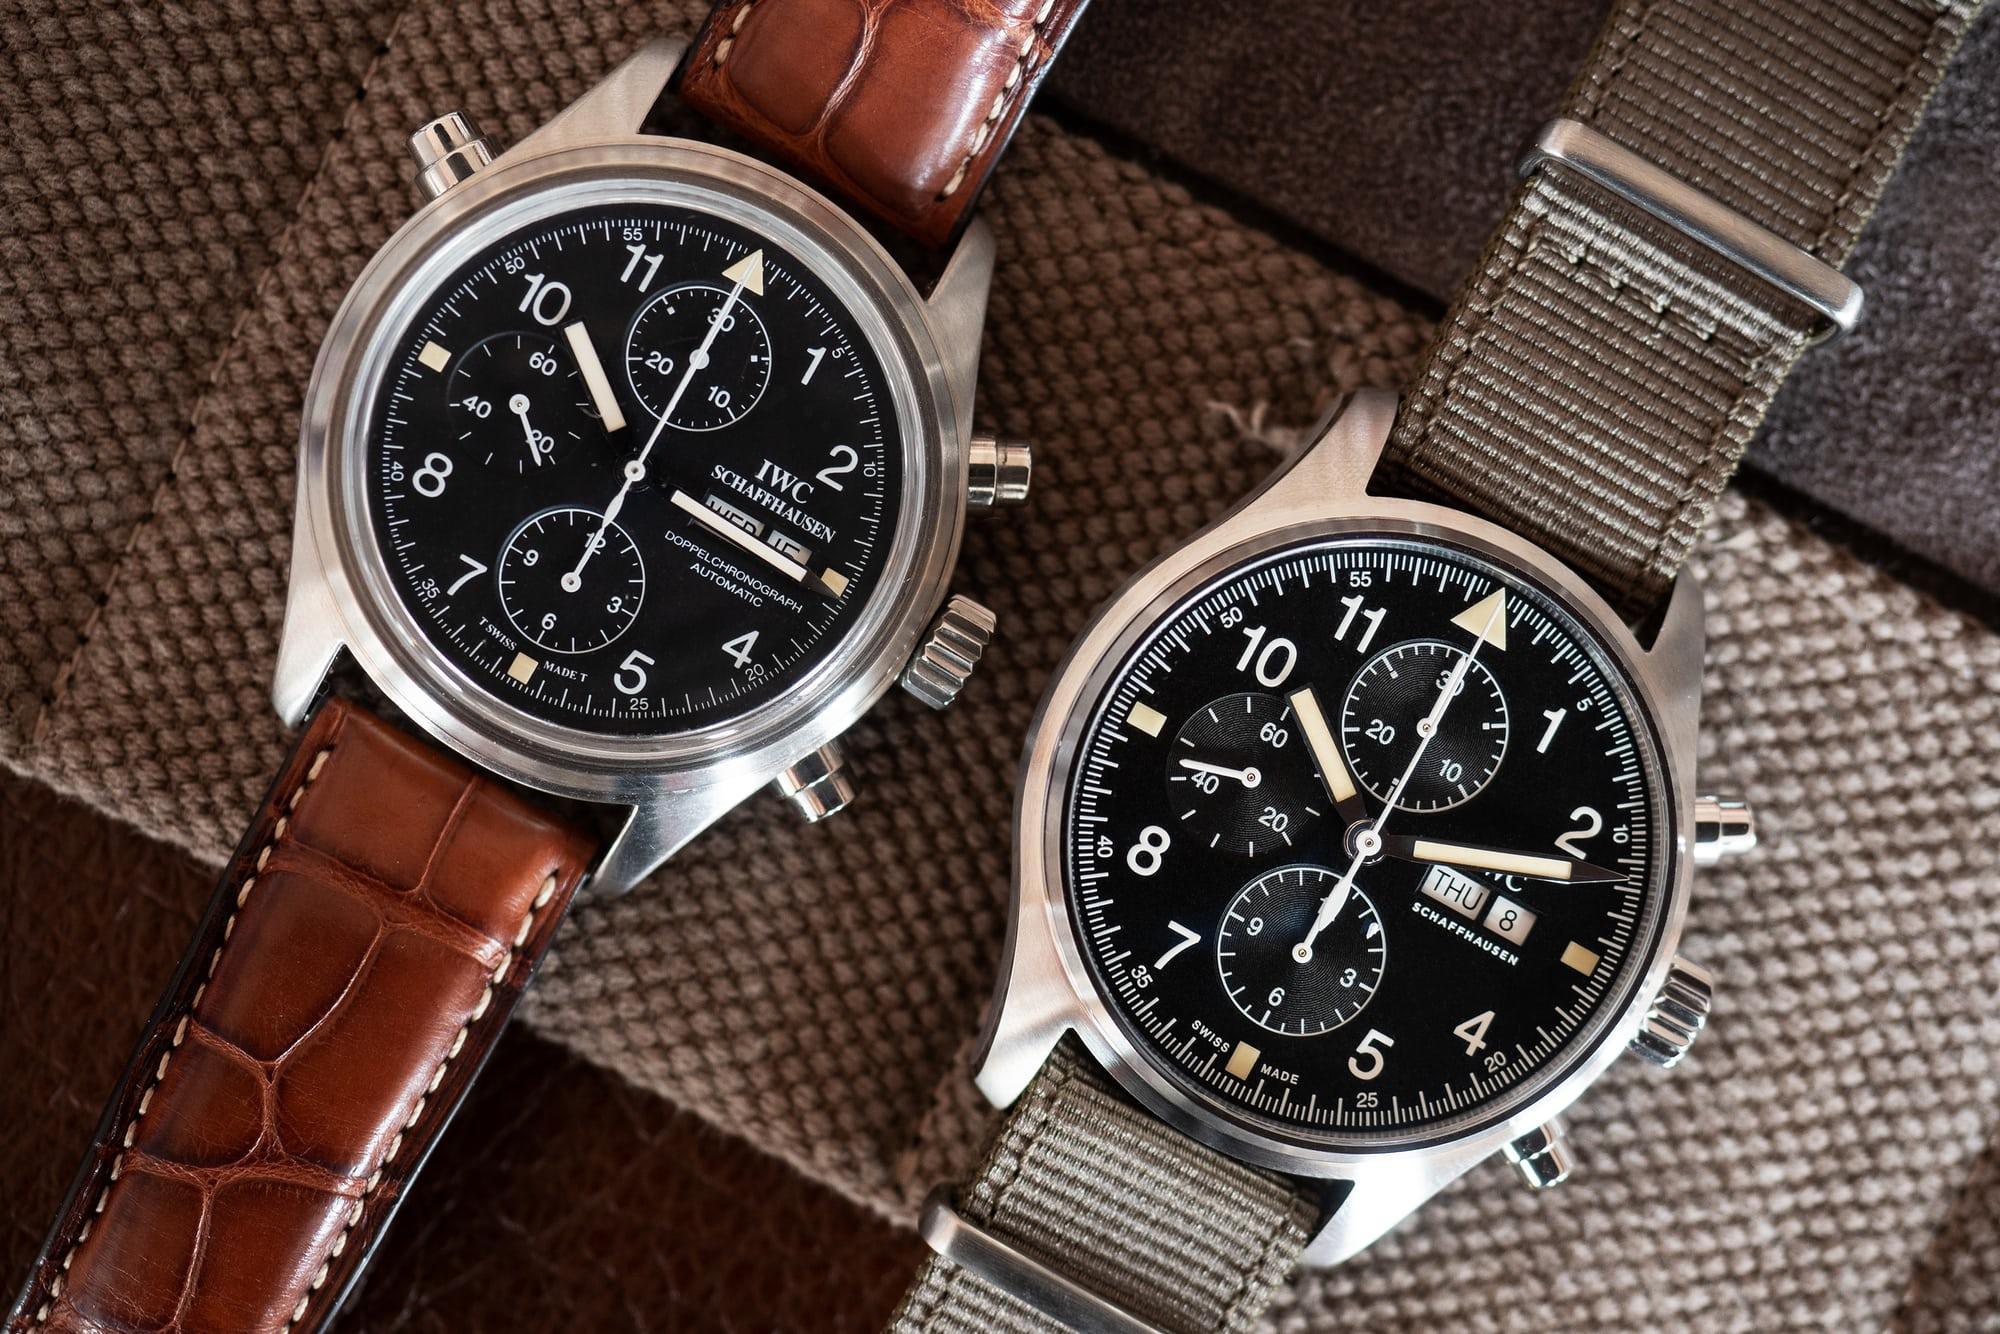 IWC Pilot's Watch Chronograph Reference IW377724 and original Doppelchronograph hands-on: the iwc pilot's watch chronograph ref. iw377724 Hands-On: The IWC Pilot's Watch Chronograph Ref. IW377724 P4250247